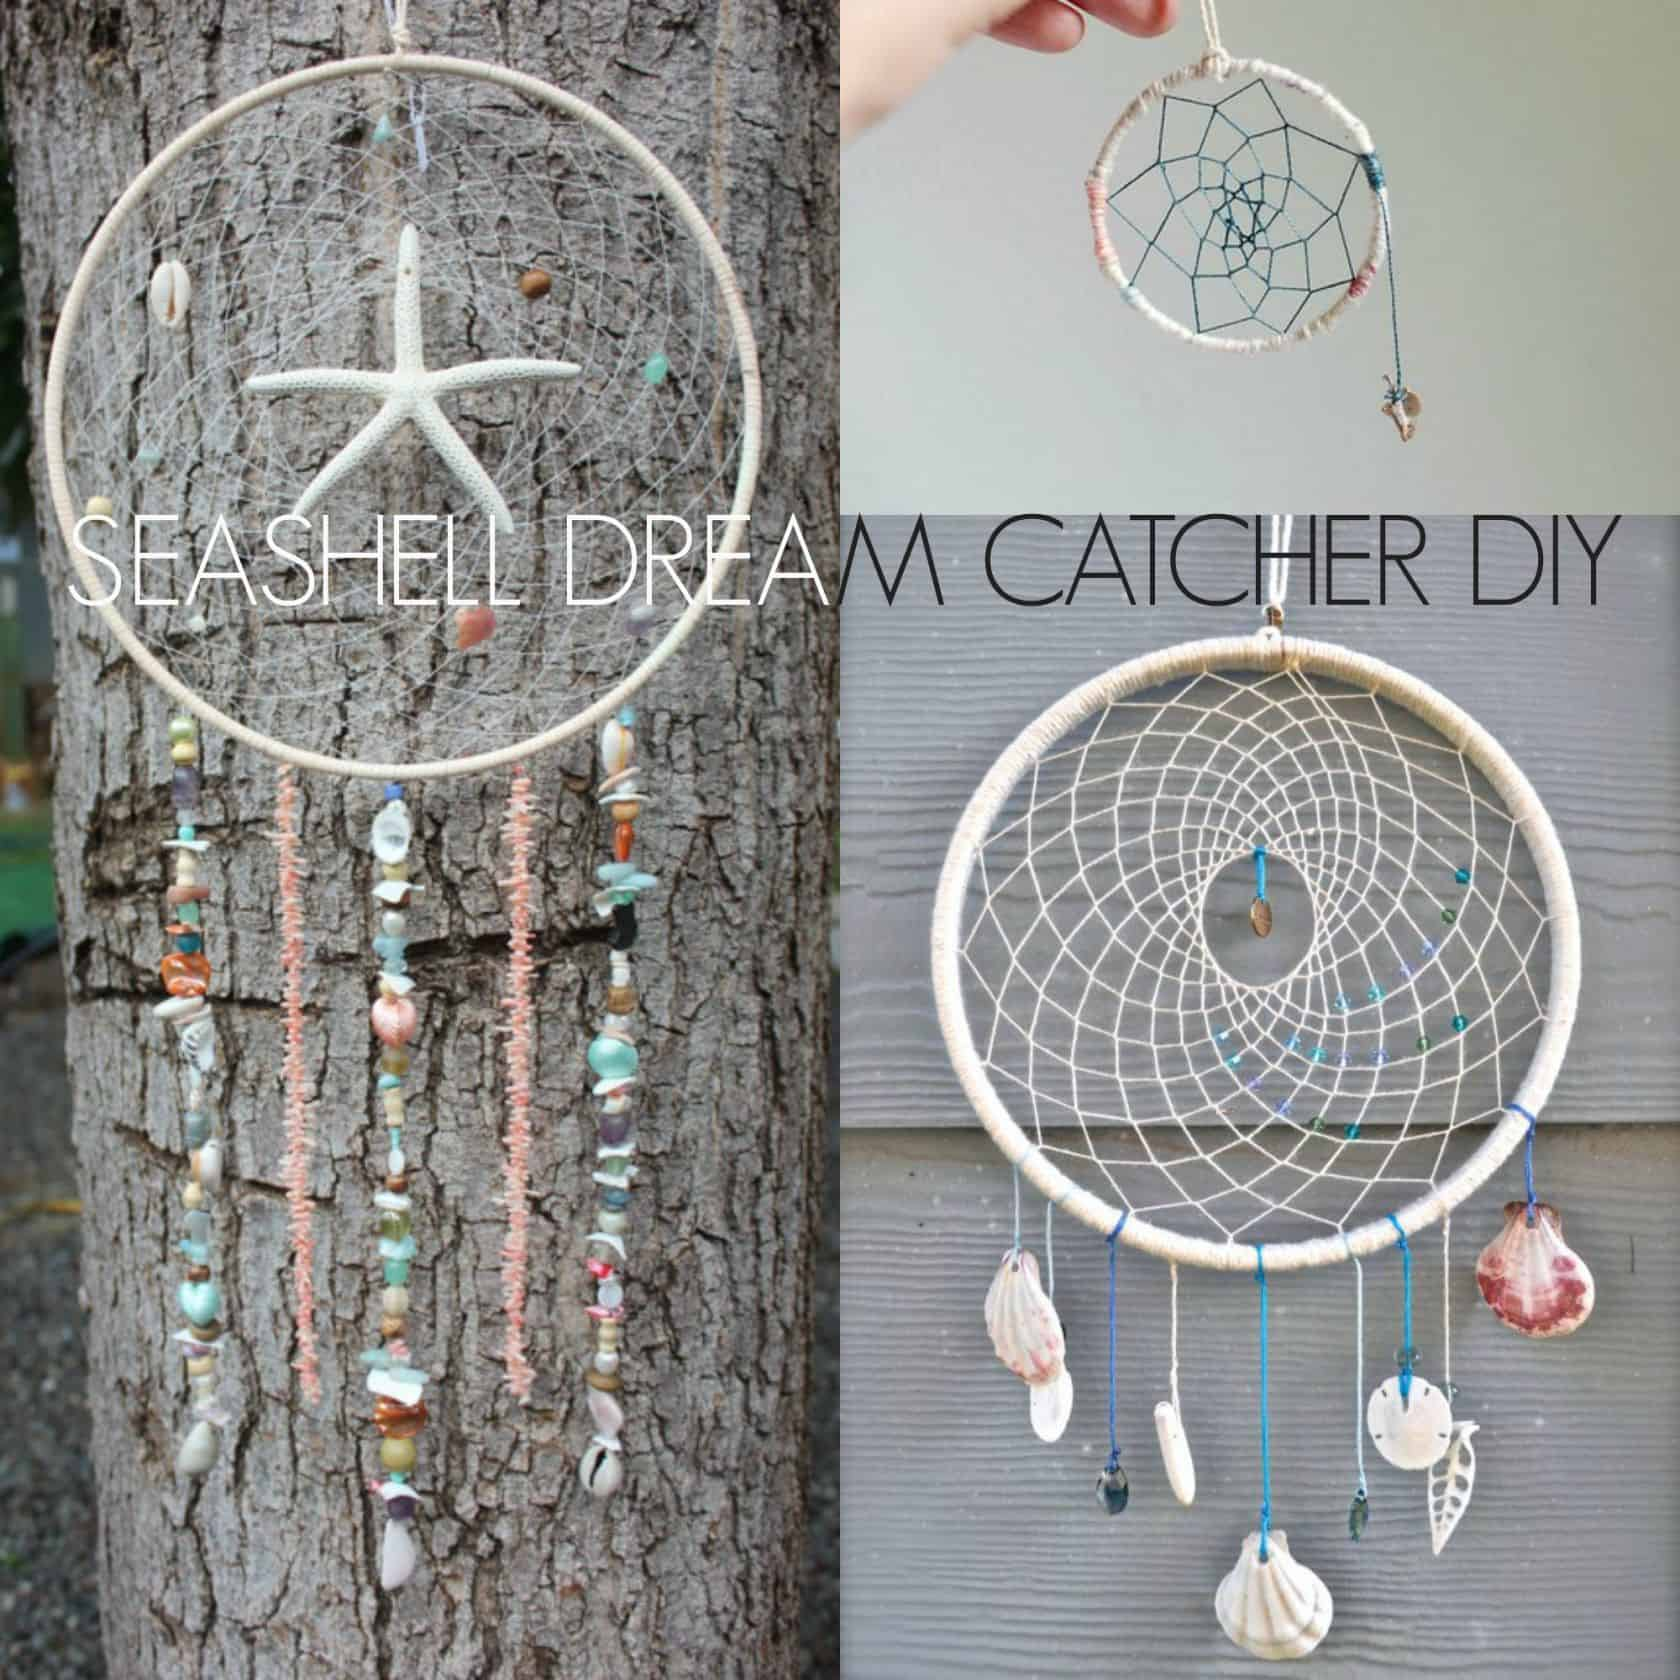 Seashell dream catcher